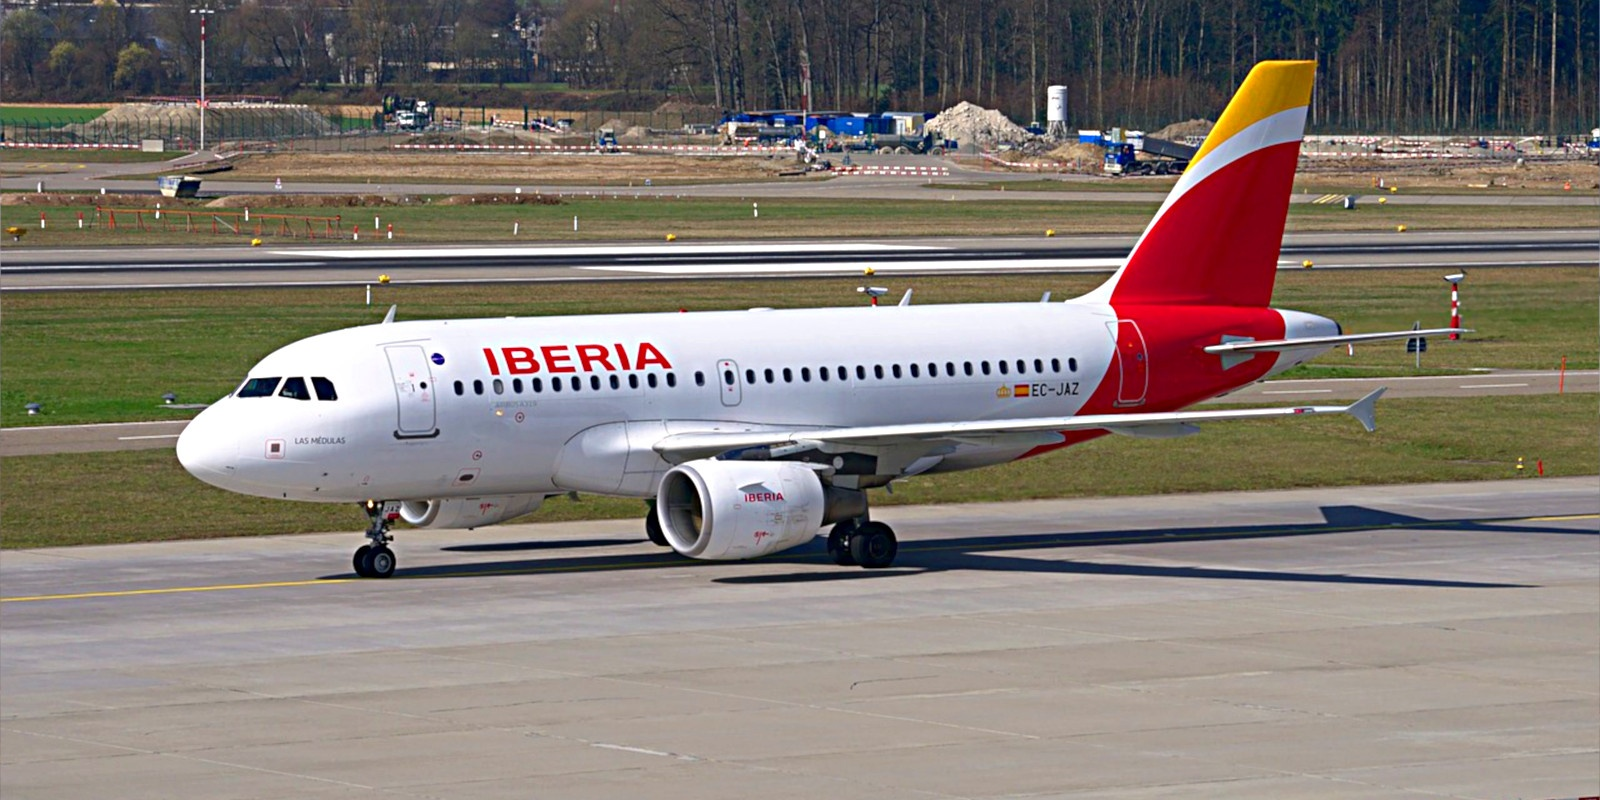 An Iberia airliner on the tarmac.